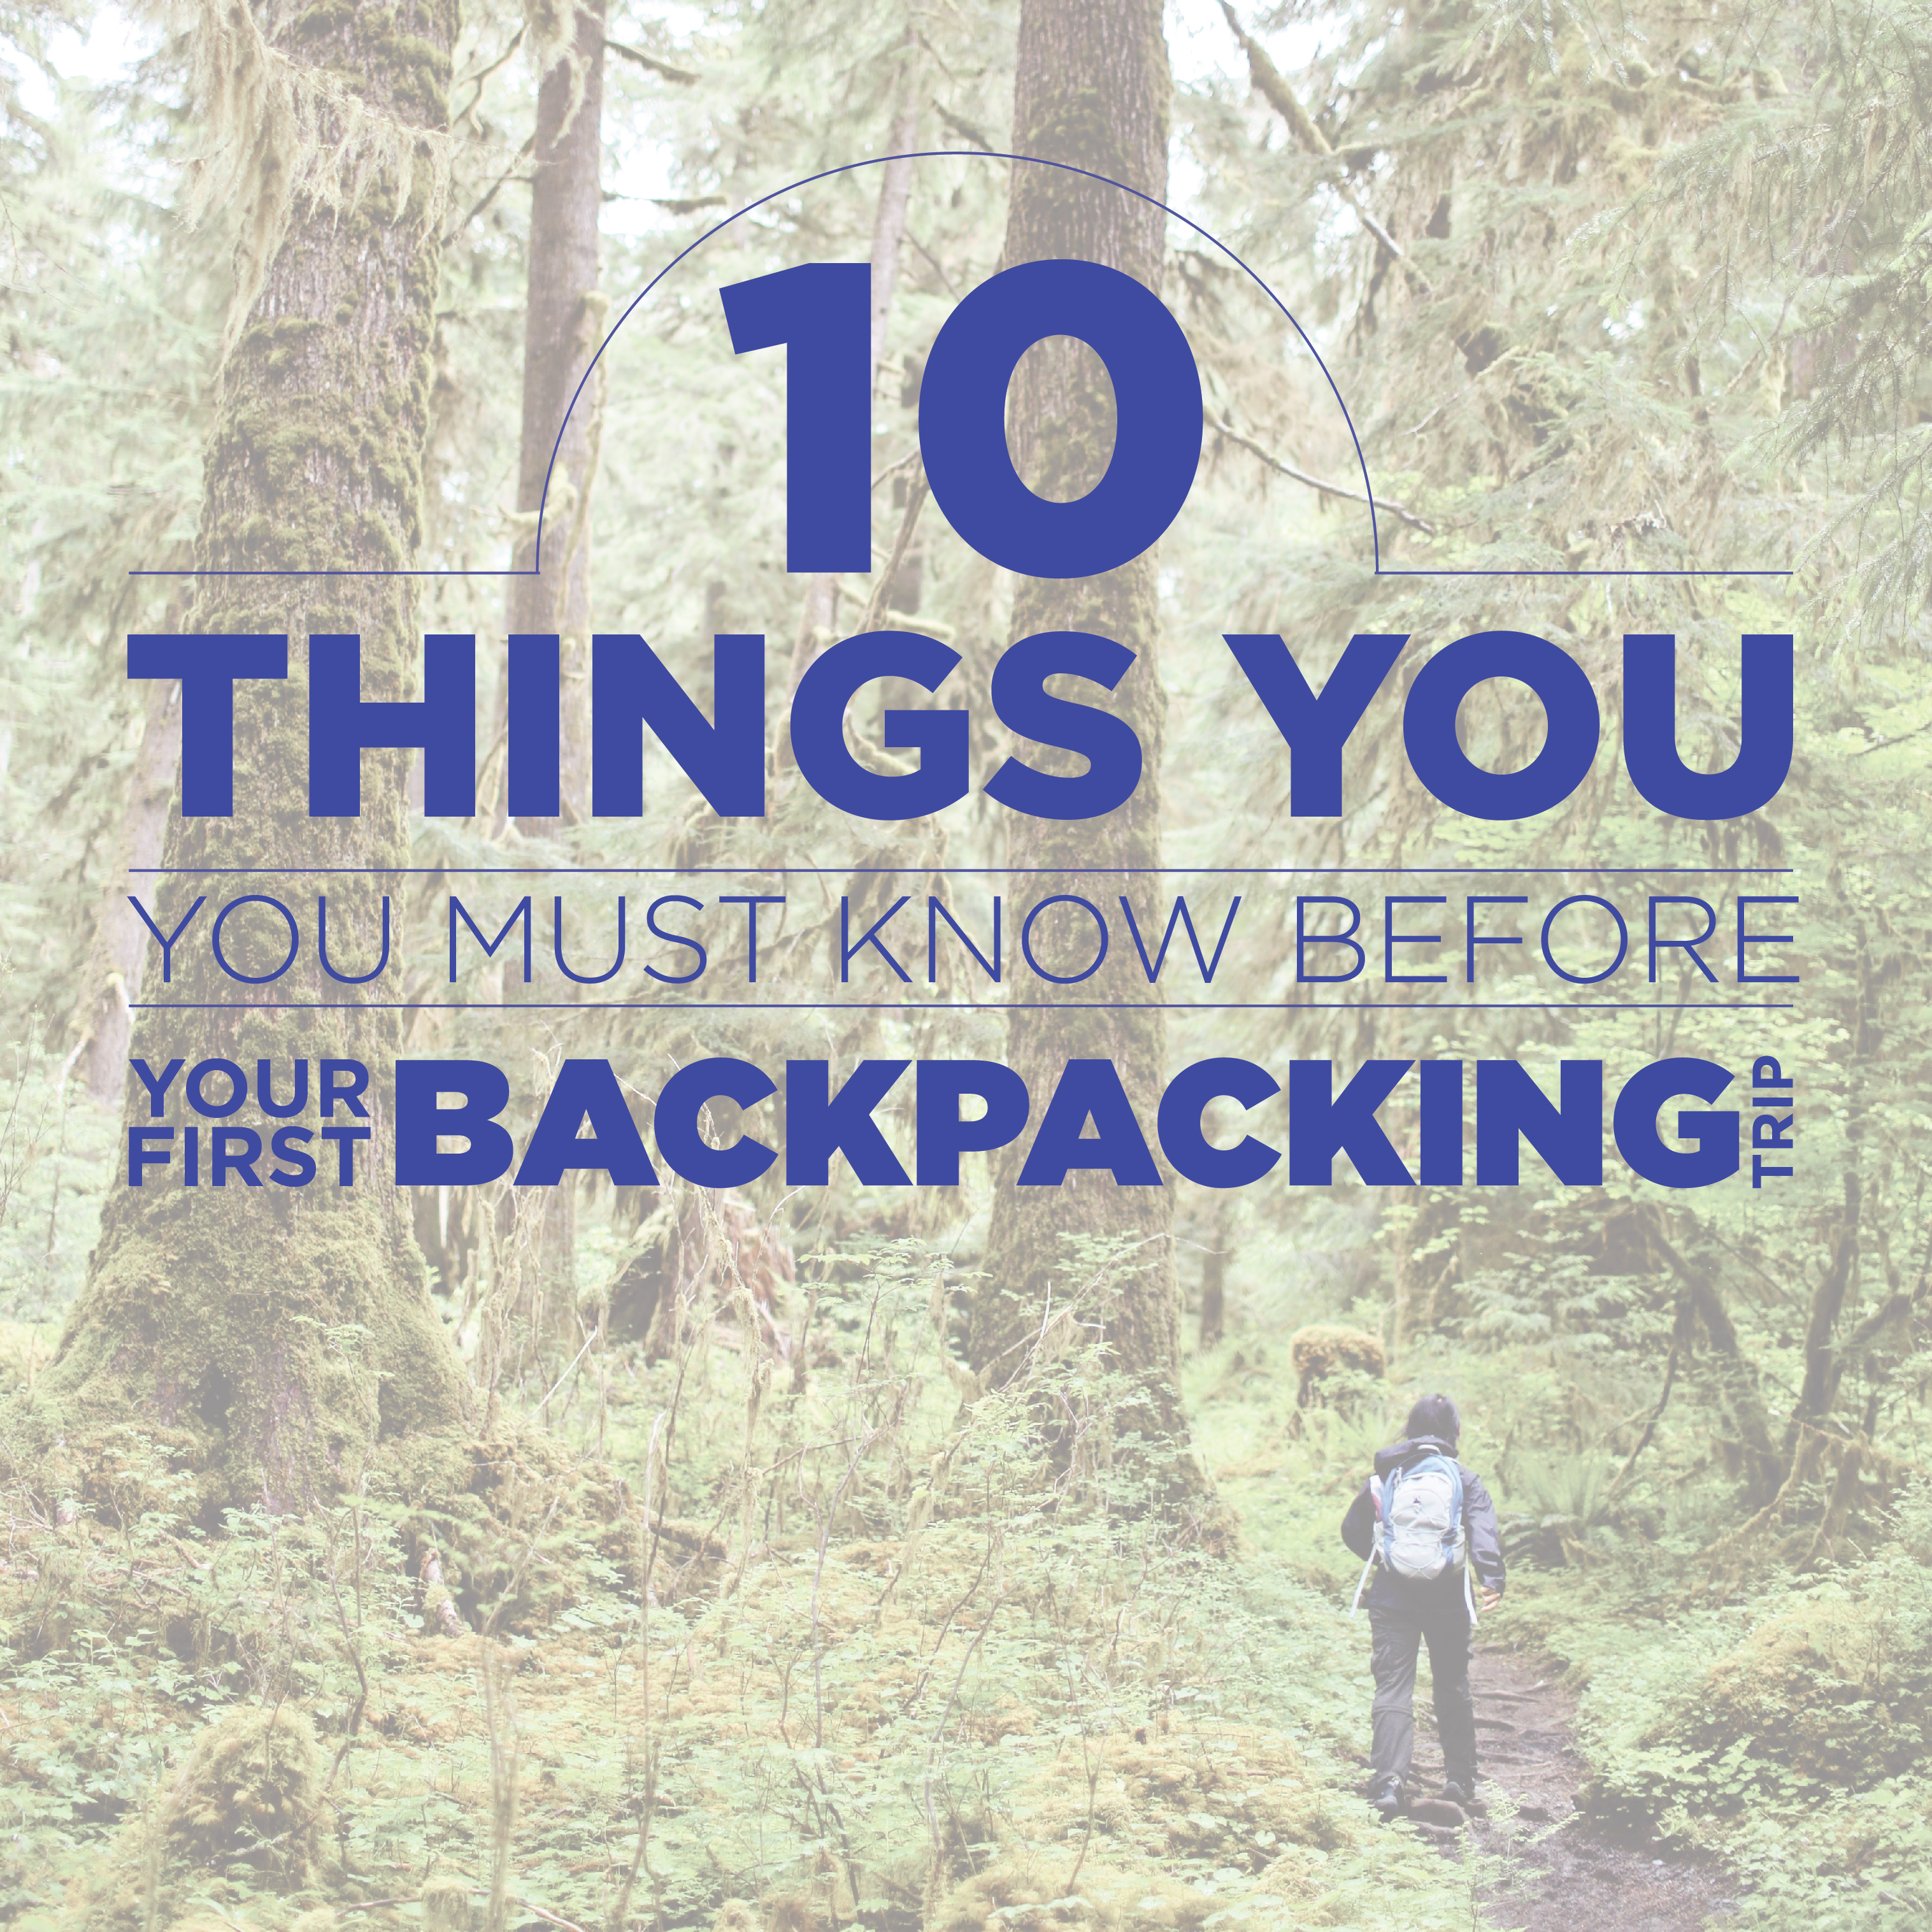 10 Tips to Prepare You For Your First Backpacking Trip